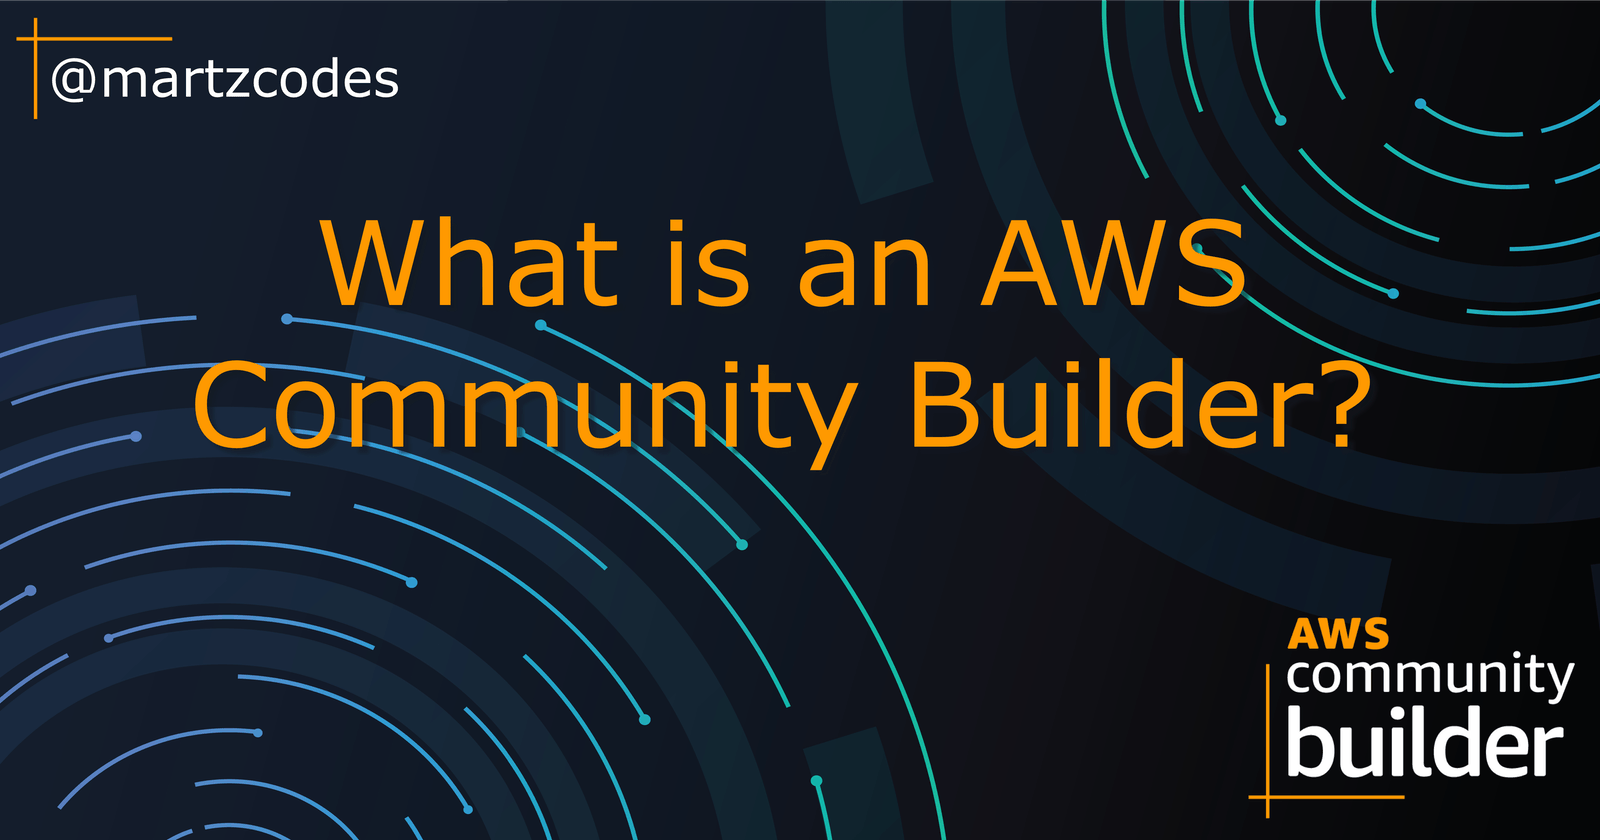 What is an AWS Community Builder?